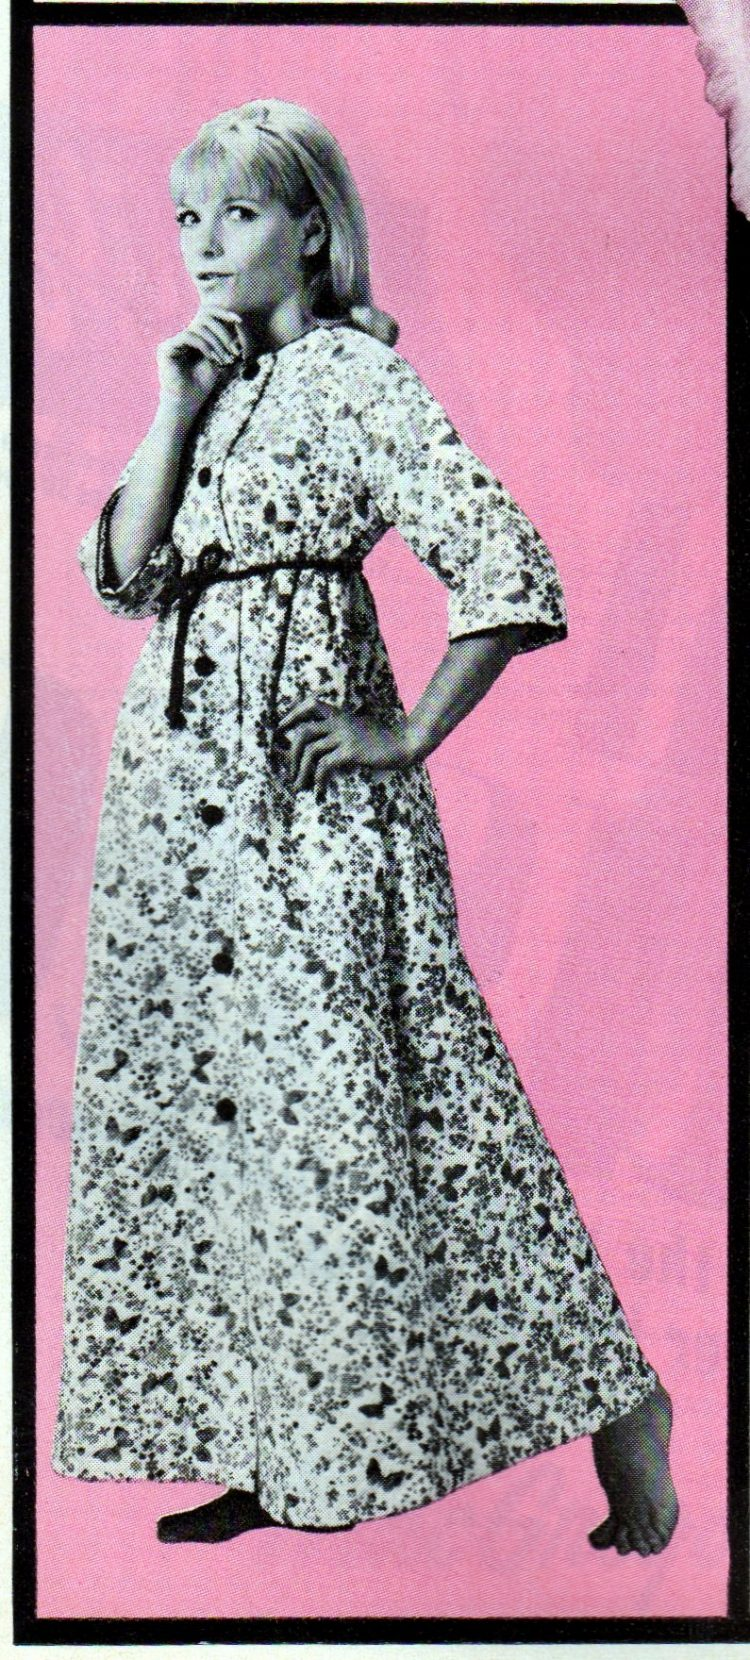 Vintage clothing from the 60s - Floor-length cotton quilted robe